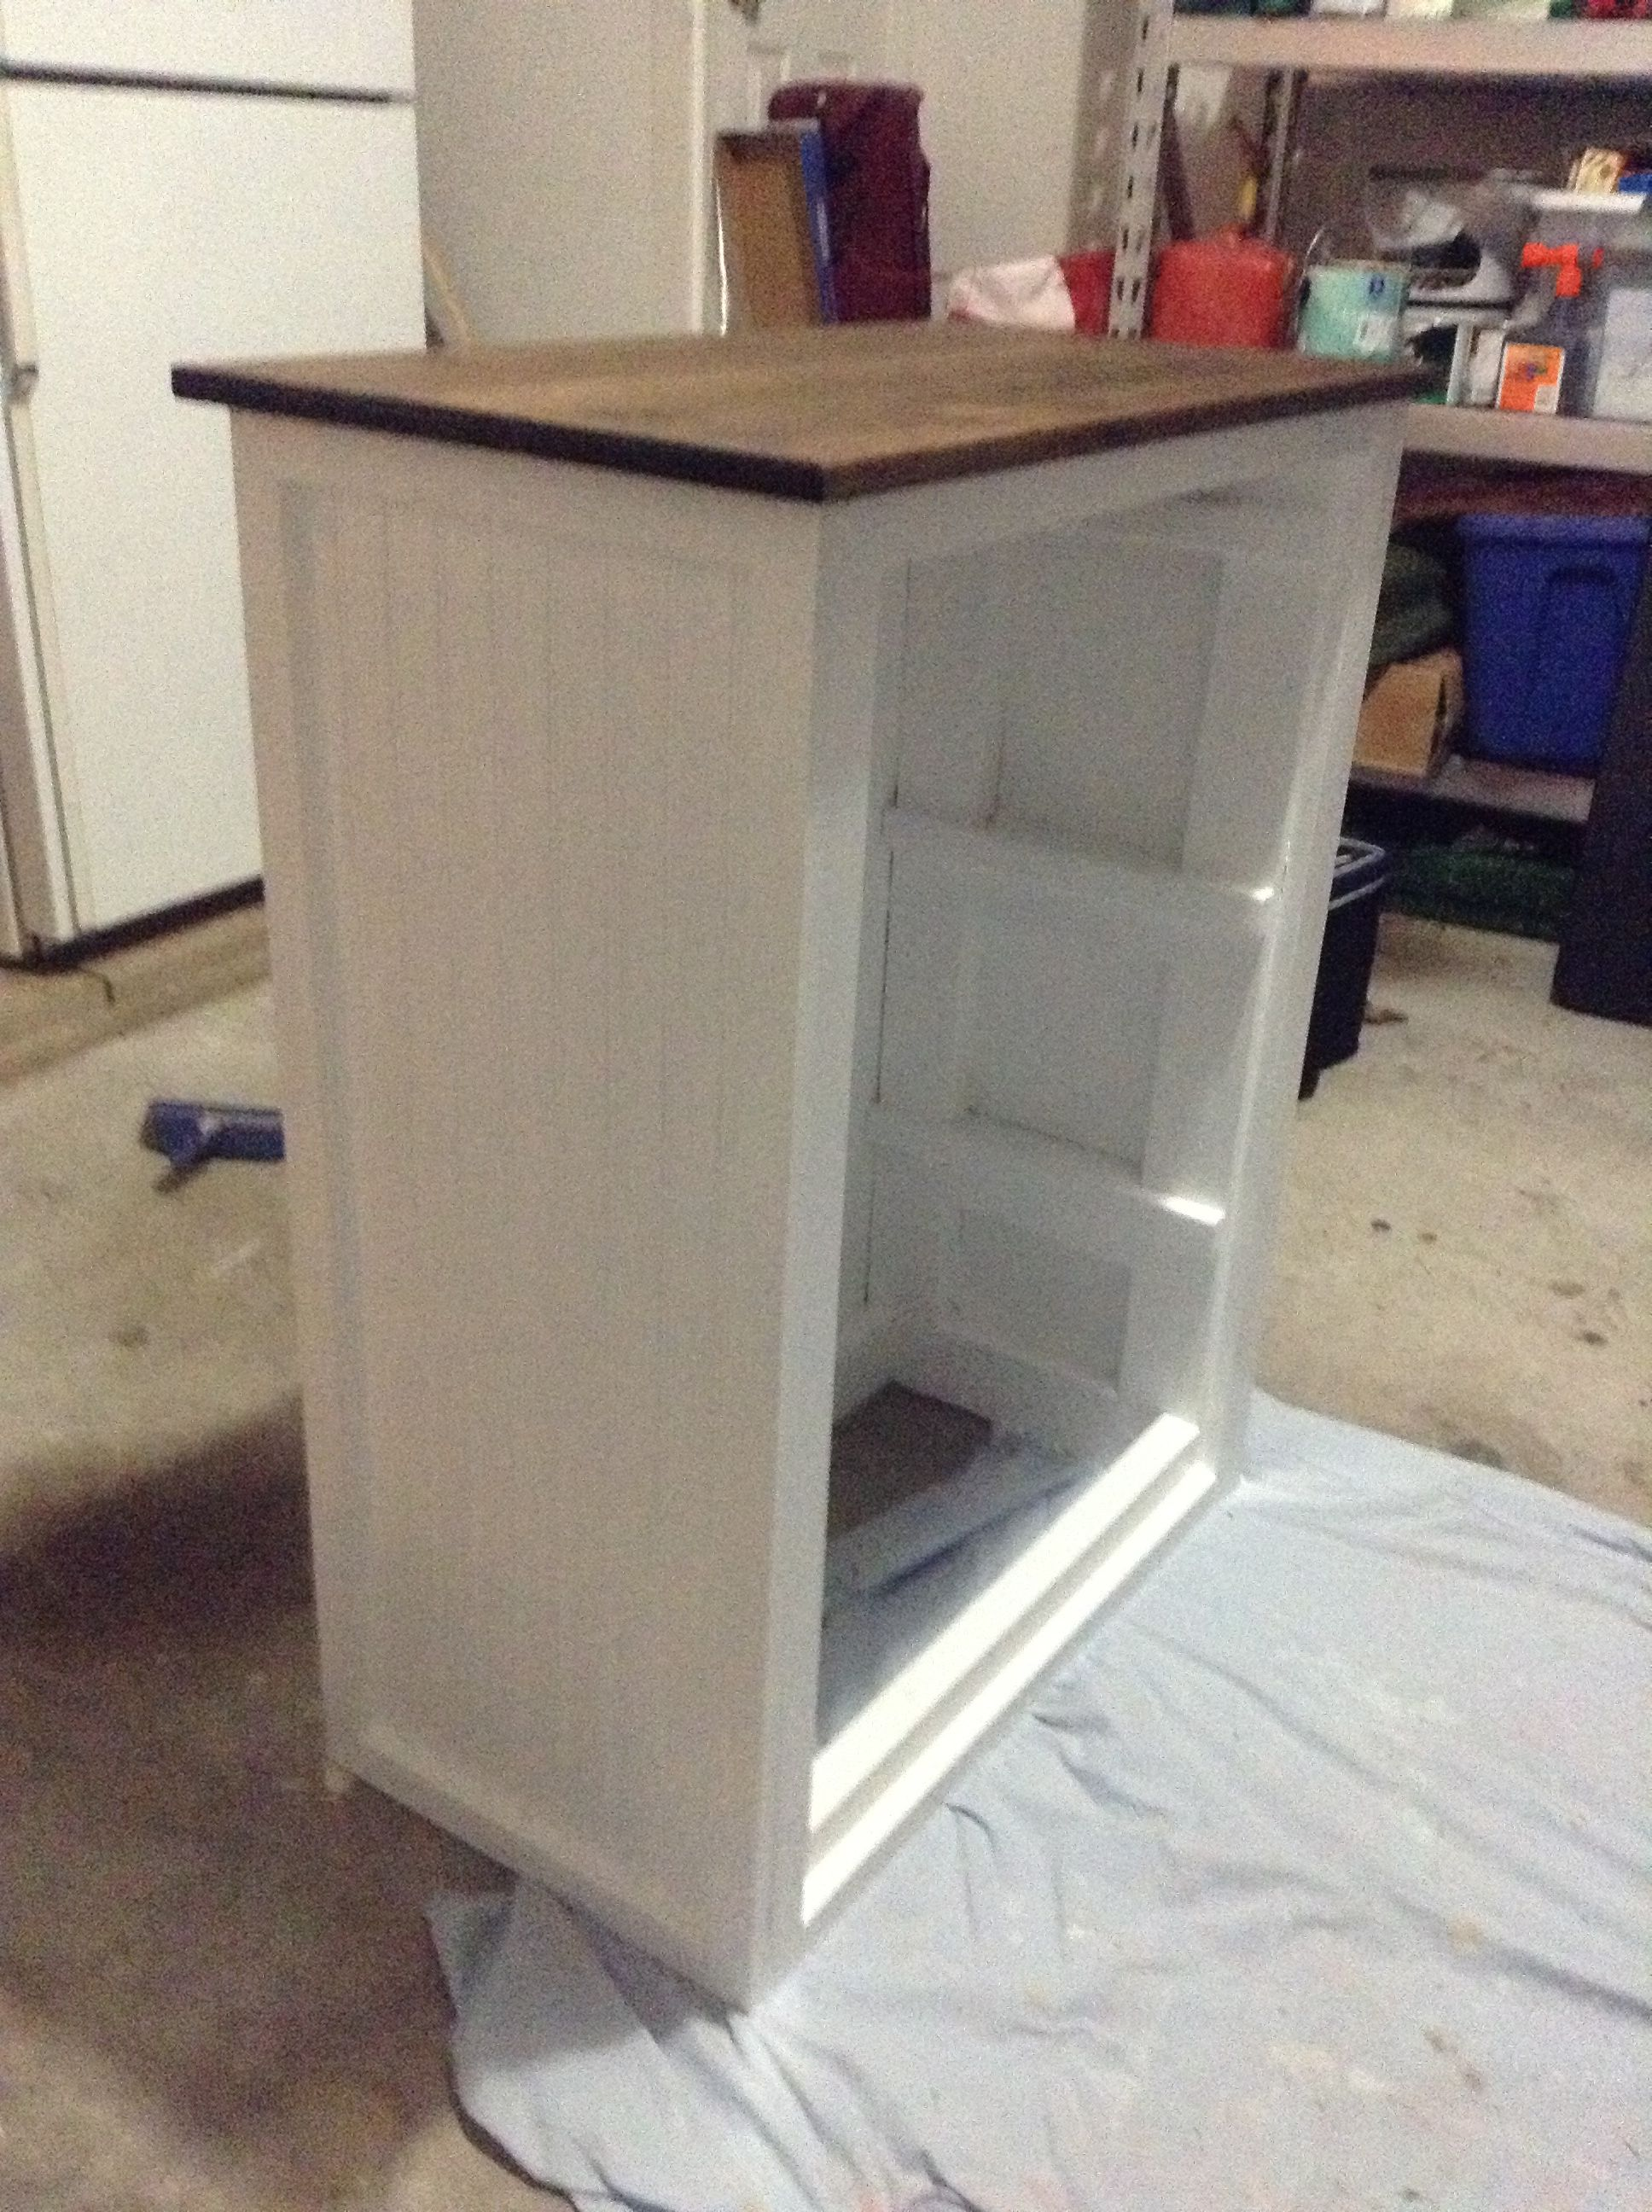 Laundry Basket Organizer Wainscoting Beadboard On Backs And